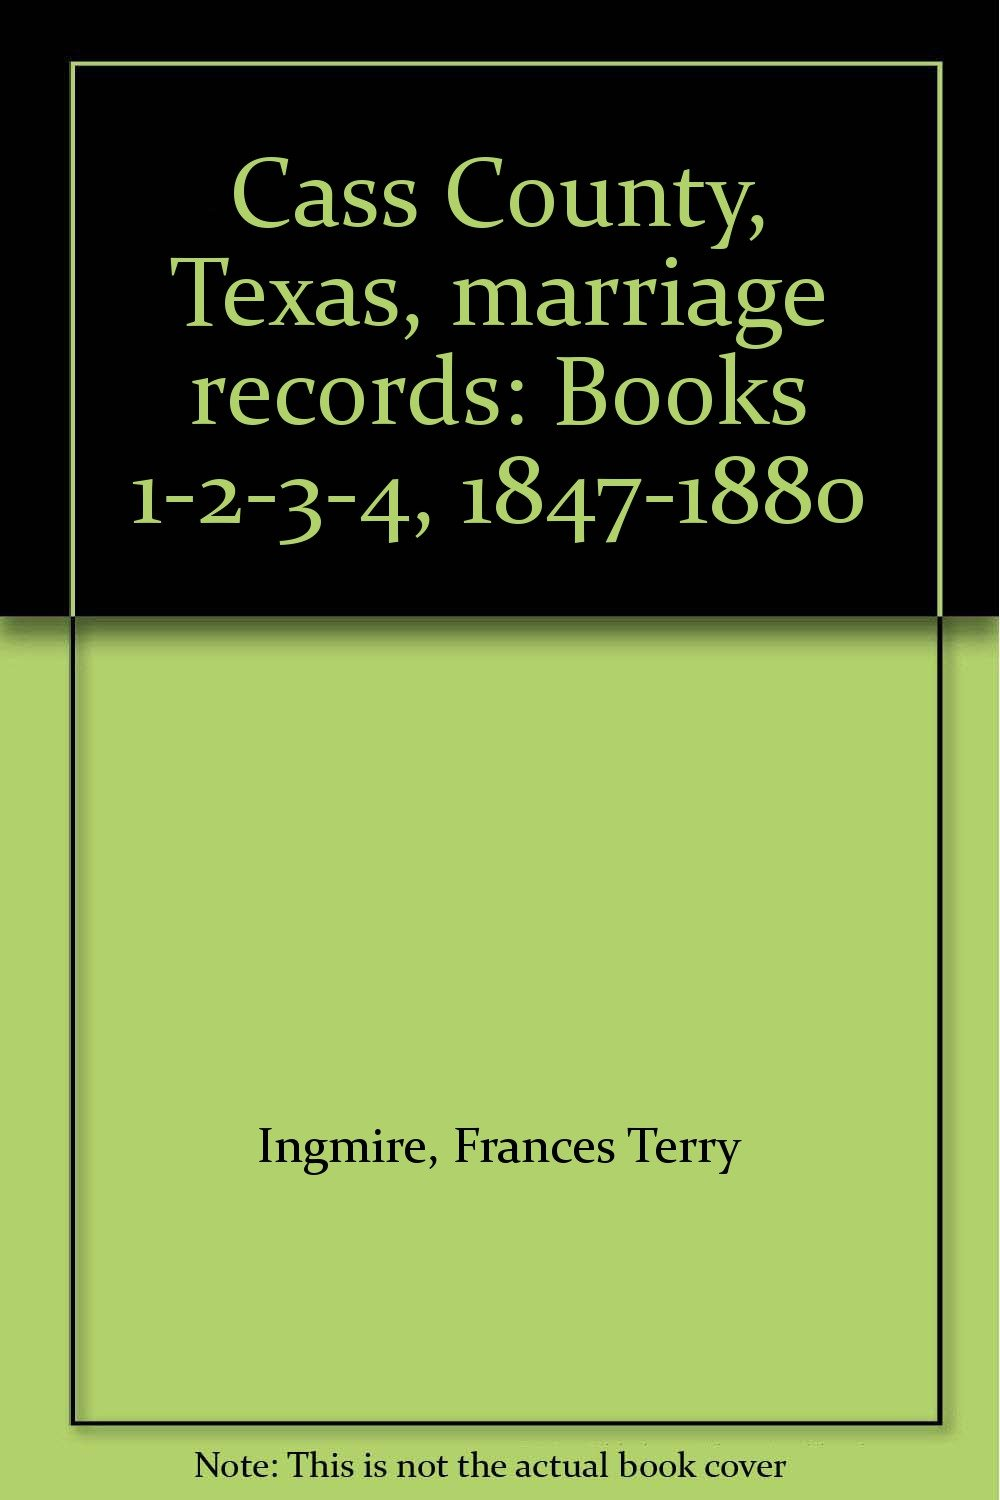 Cass County, Texas, marriage records: Books 1-2-3-4, 1847